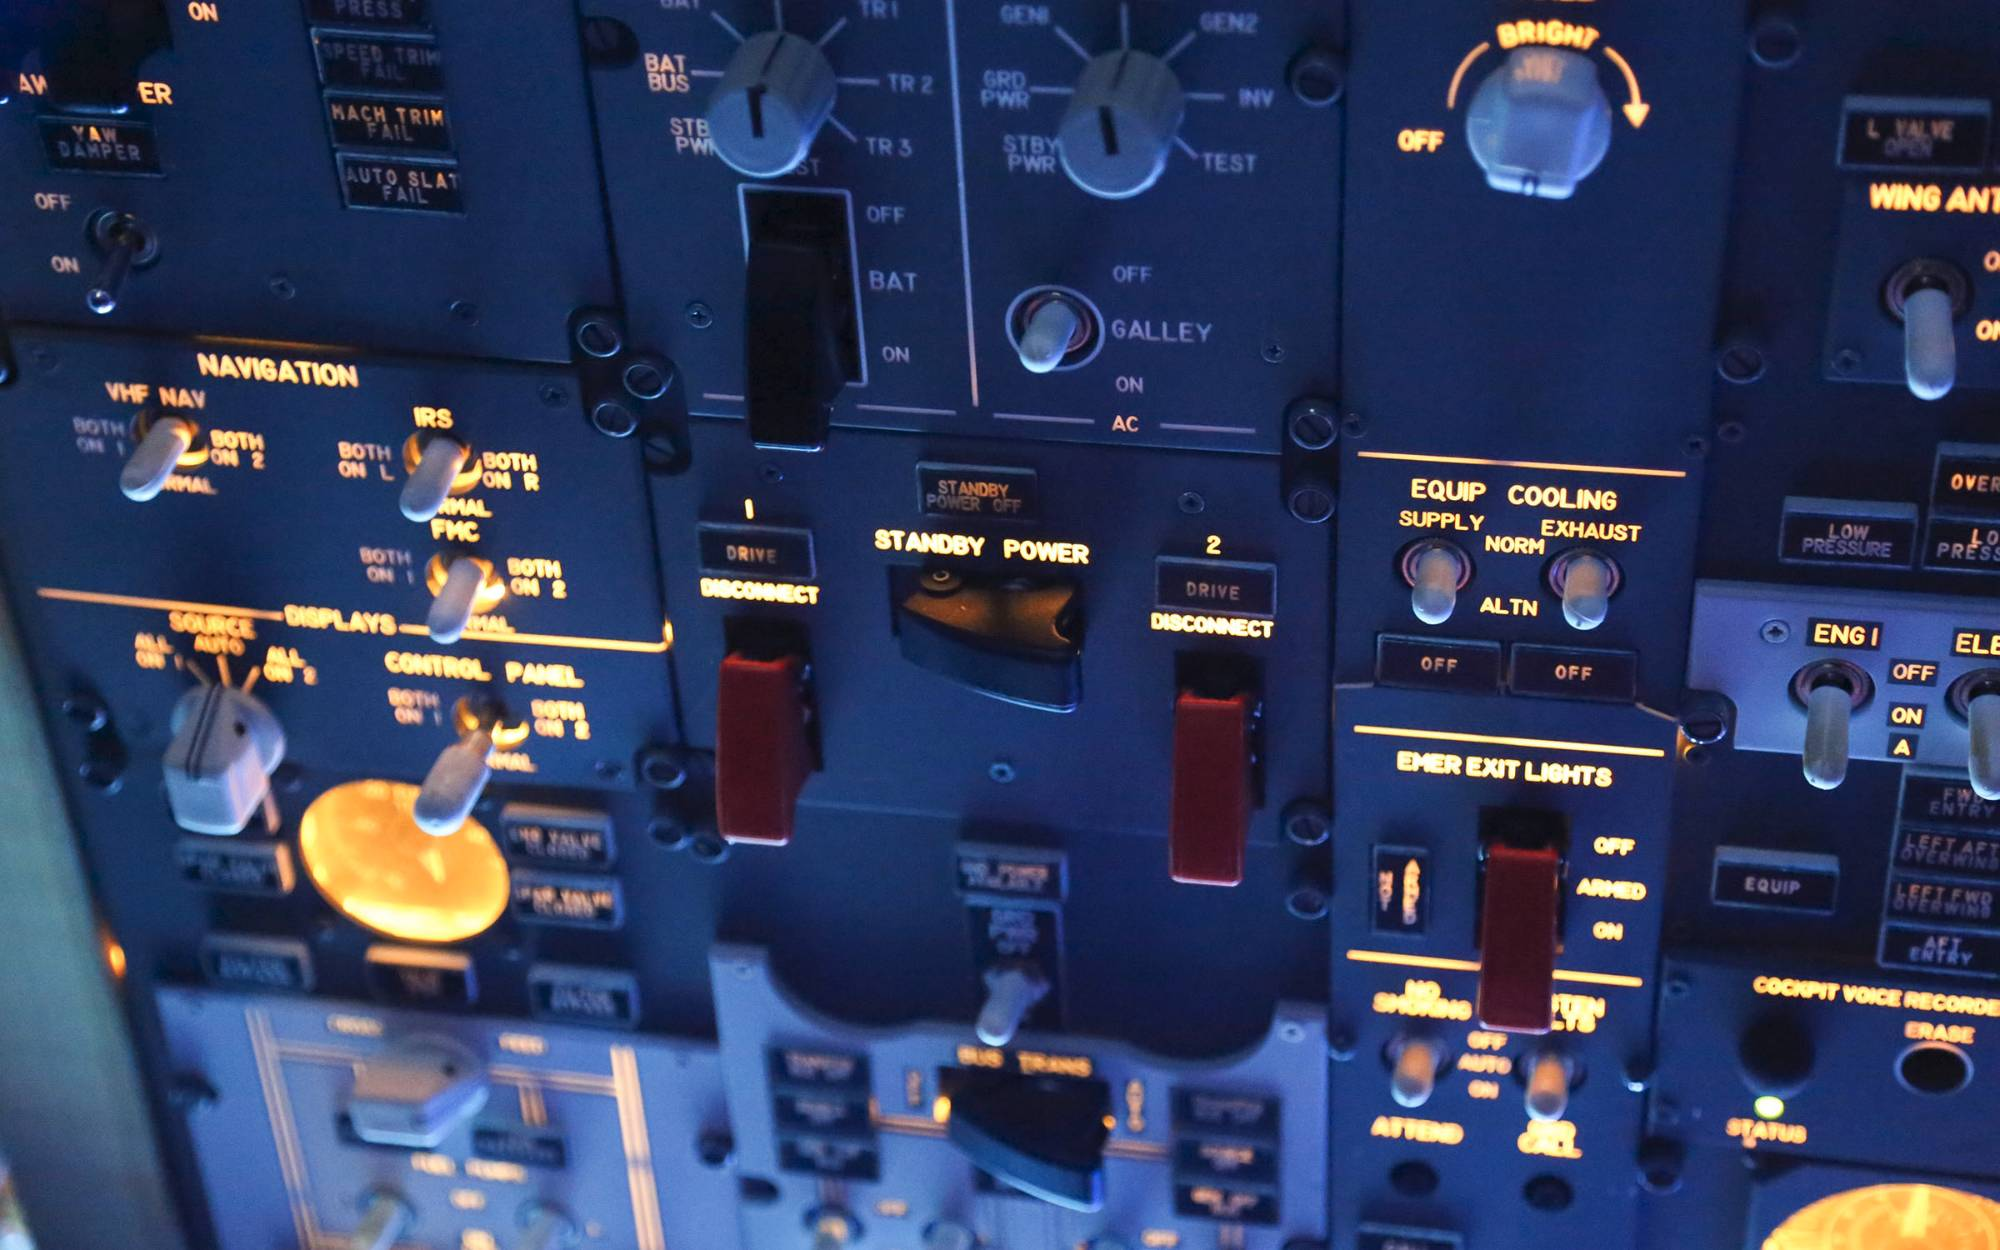 Flight Simulator For Sale - Boeing 737 cockpit